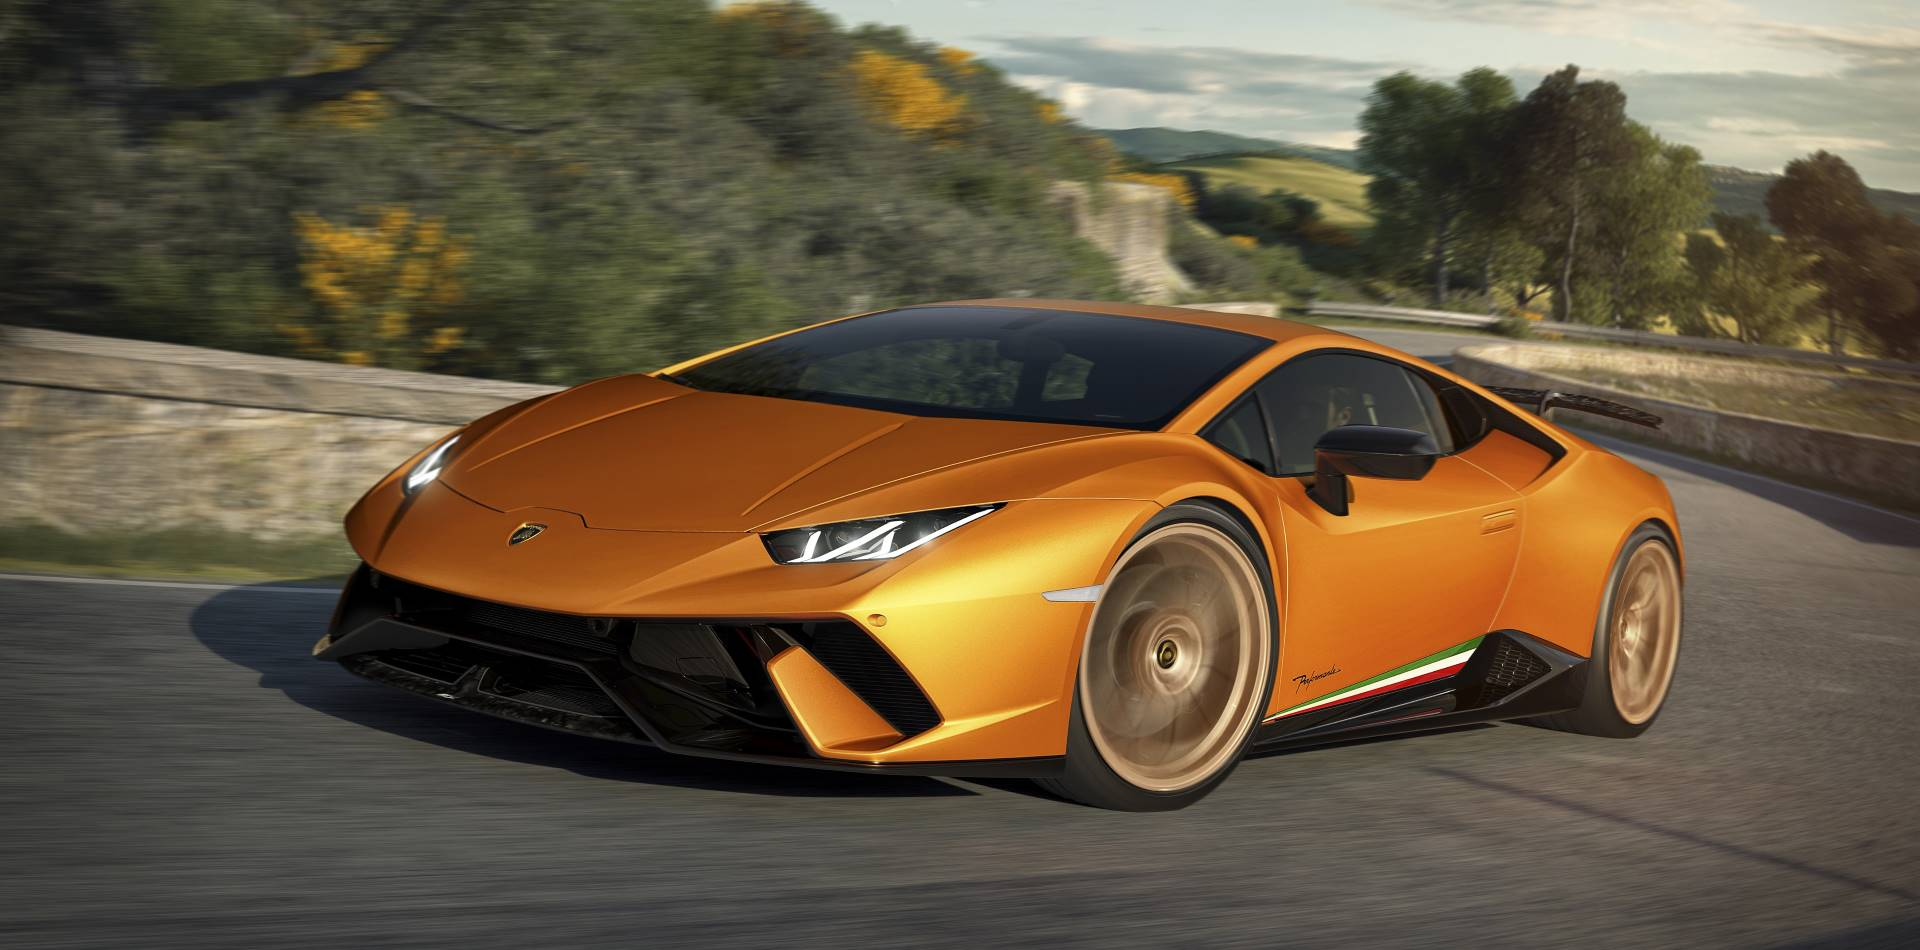 Lamborghini has set the car sales record